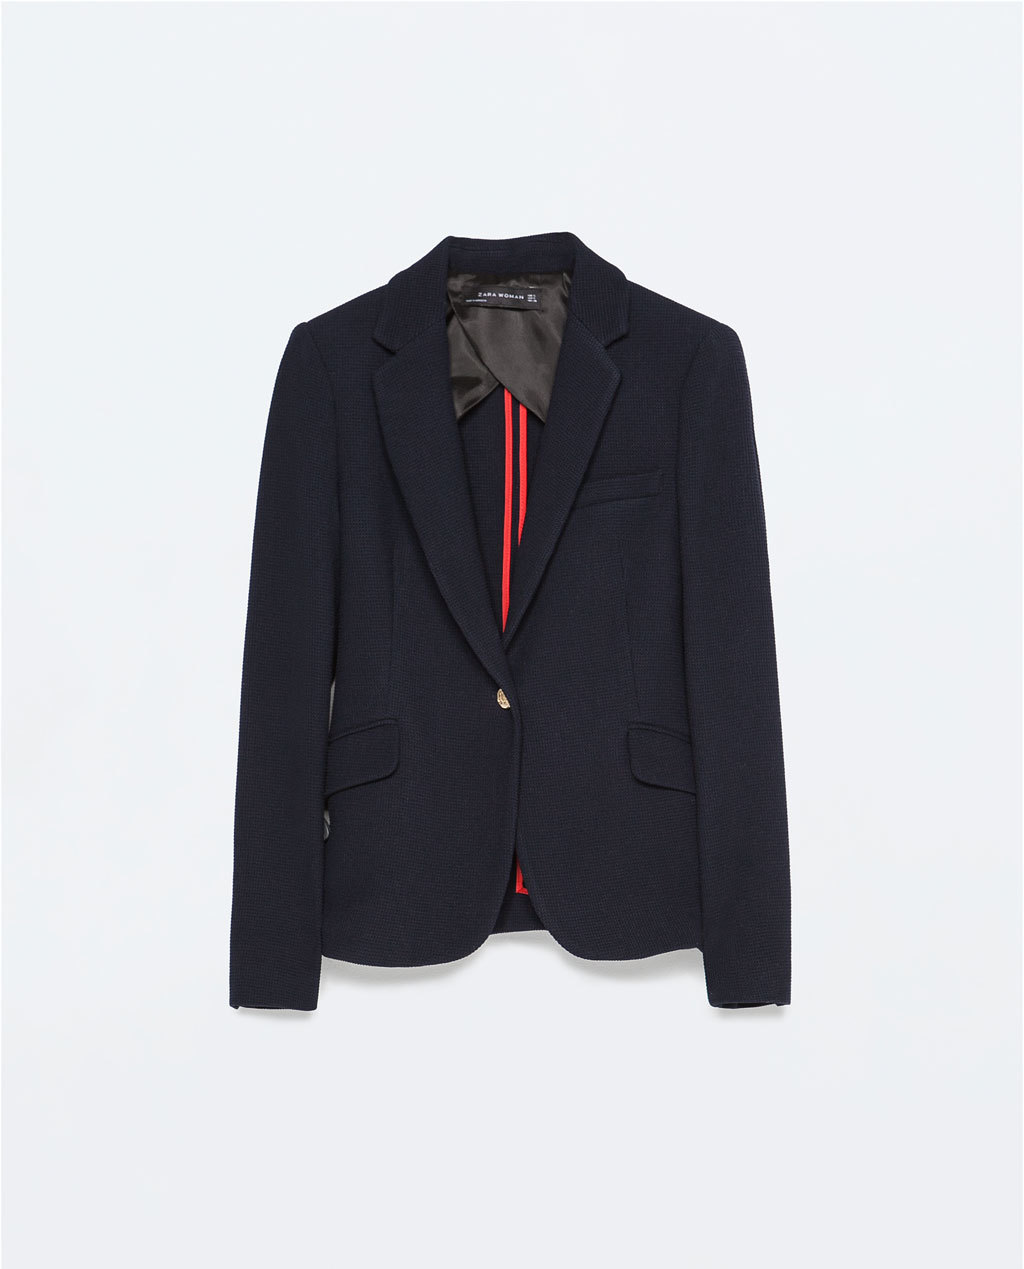 Structured Blazer - pattern: plain; style: single breasted blazer; collar: standard lapel/rever collar; predominant colour: navy; occasions: evening, work, creative work; length: standard; fit: tailored/fitted; fibres: polyester/polyamide - mix; sleeve length: long sleeve; sleeve style: standard; collar break: low/open; pattern type: fabric; texture group: woven light midweight; season: s/s 2015; wardrobe: investment